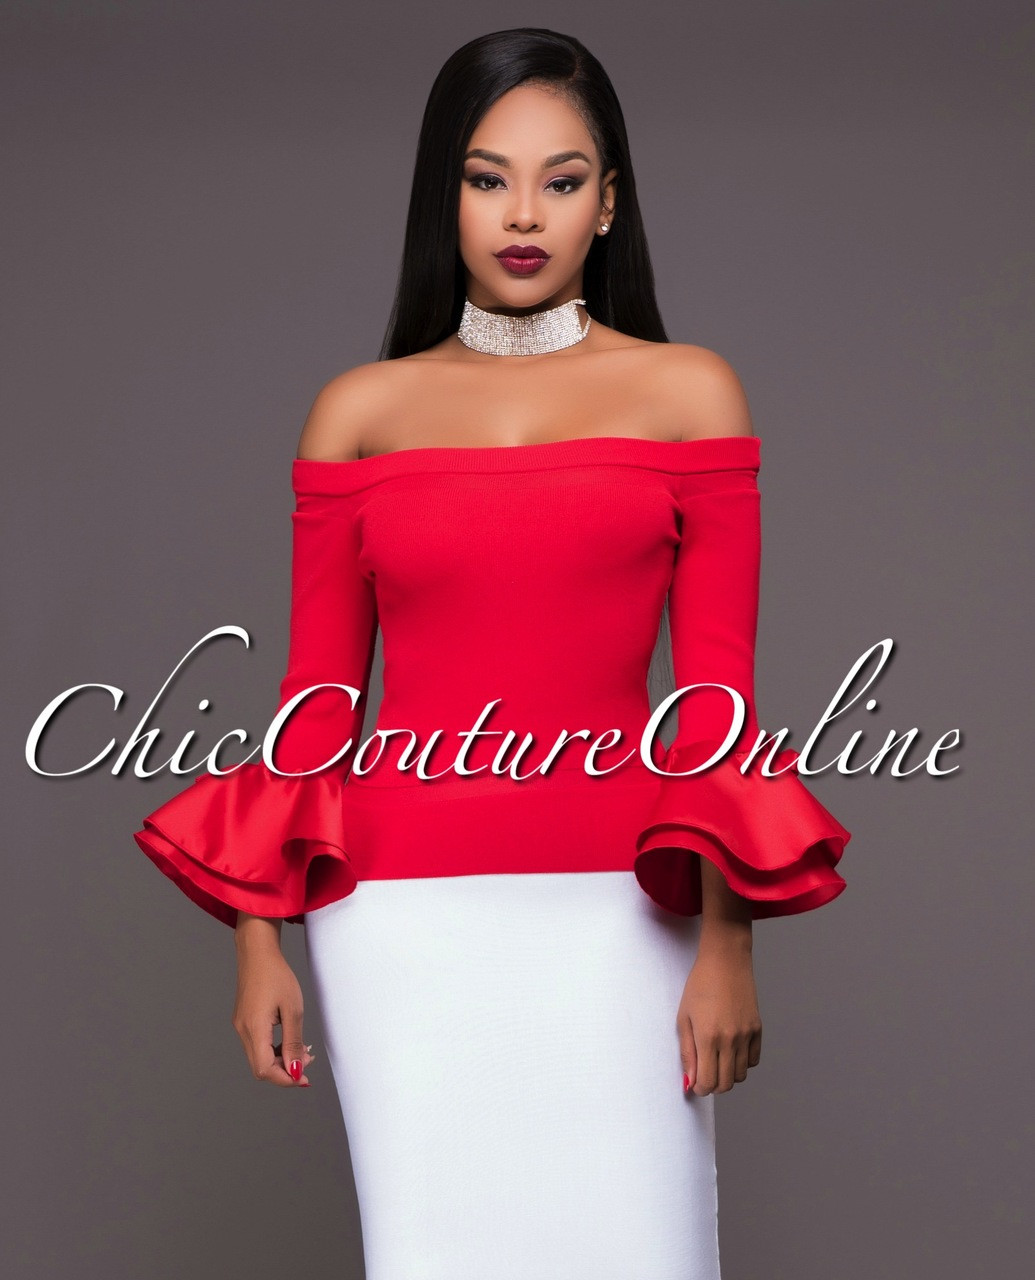 042e819f2bb Sashanie Red Long Bell Sleeves Off-The-Shoulder Top. Your Price: $35.00  (You save $10.00). Image 1